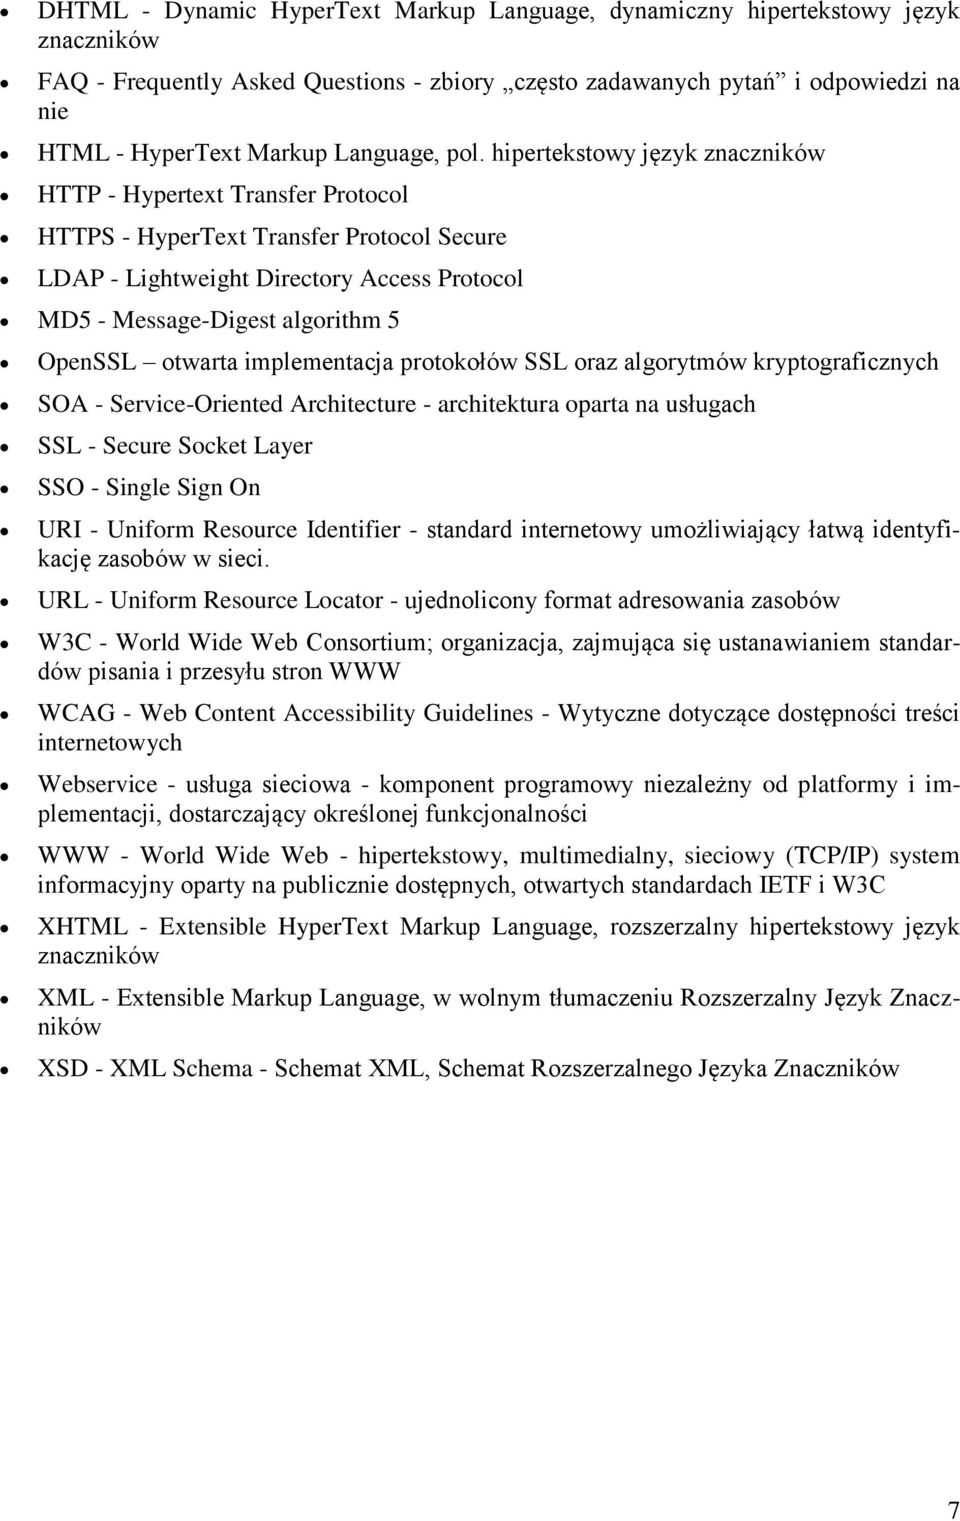 hipertekstowy język znaczników HTTP - Hypertext Transfer Protocol HTTPS - HyperText Transfer Protocol Secure LDAP - Lightweight Directory Access Protocol MD5 - Message-Digest algorithm 5 OpenSSL